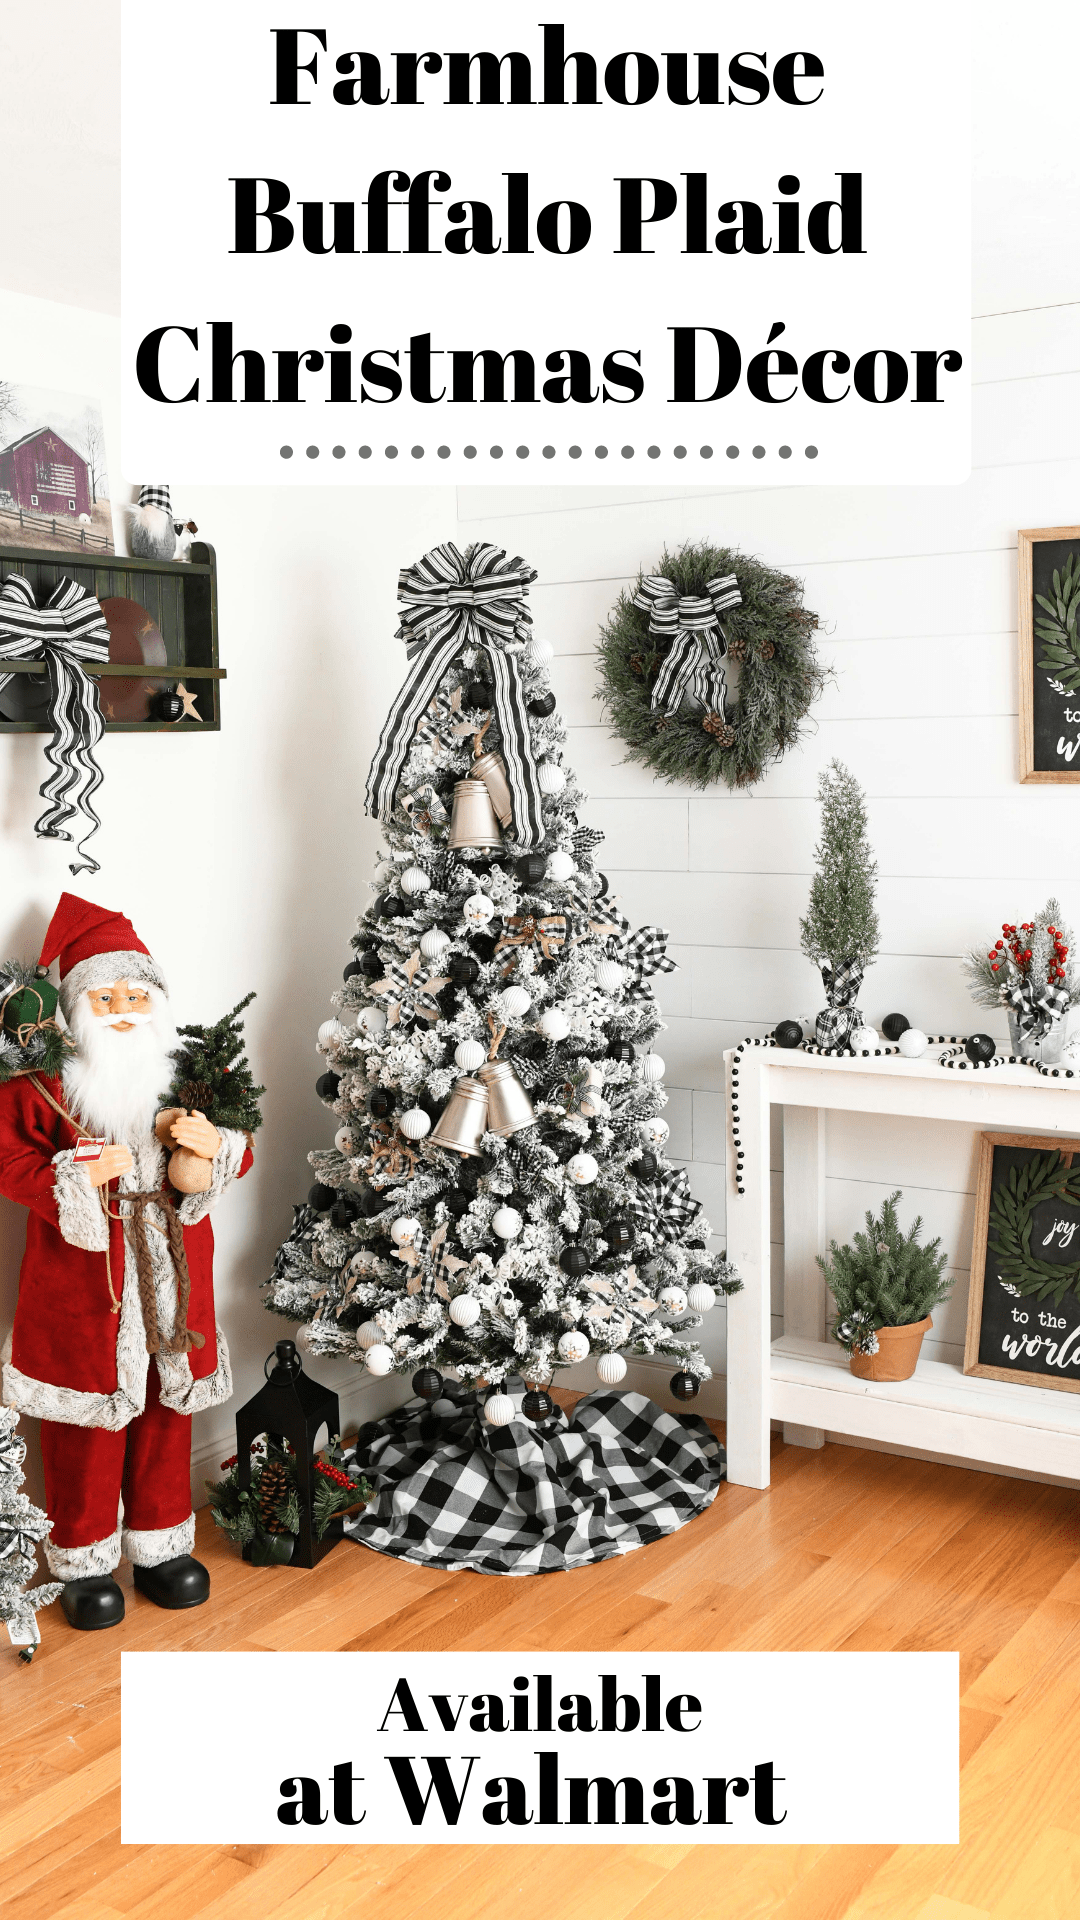 Buffalo Plaid Christmas Decor Ideas Savvy Saving Couple